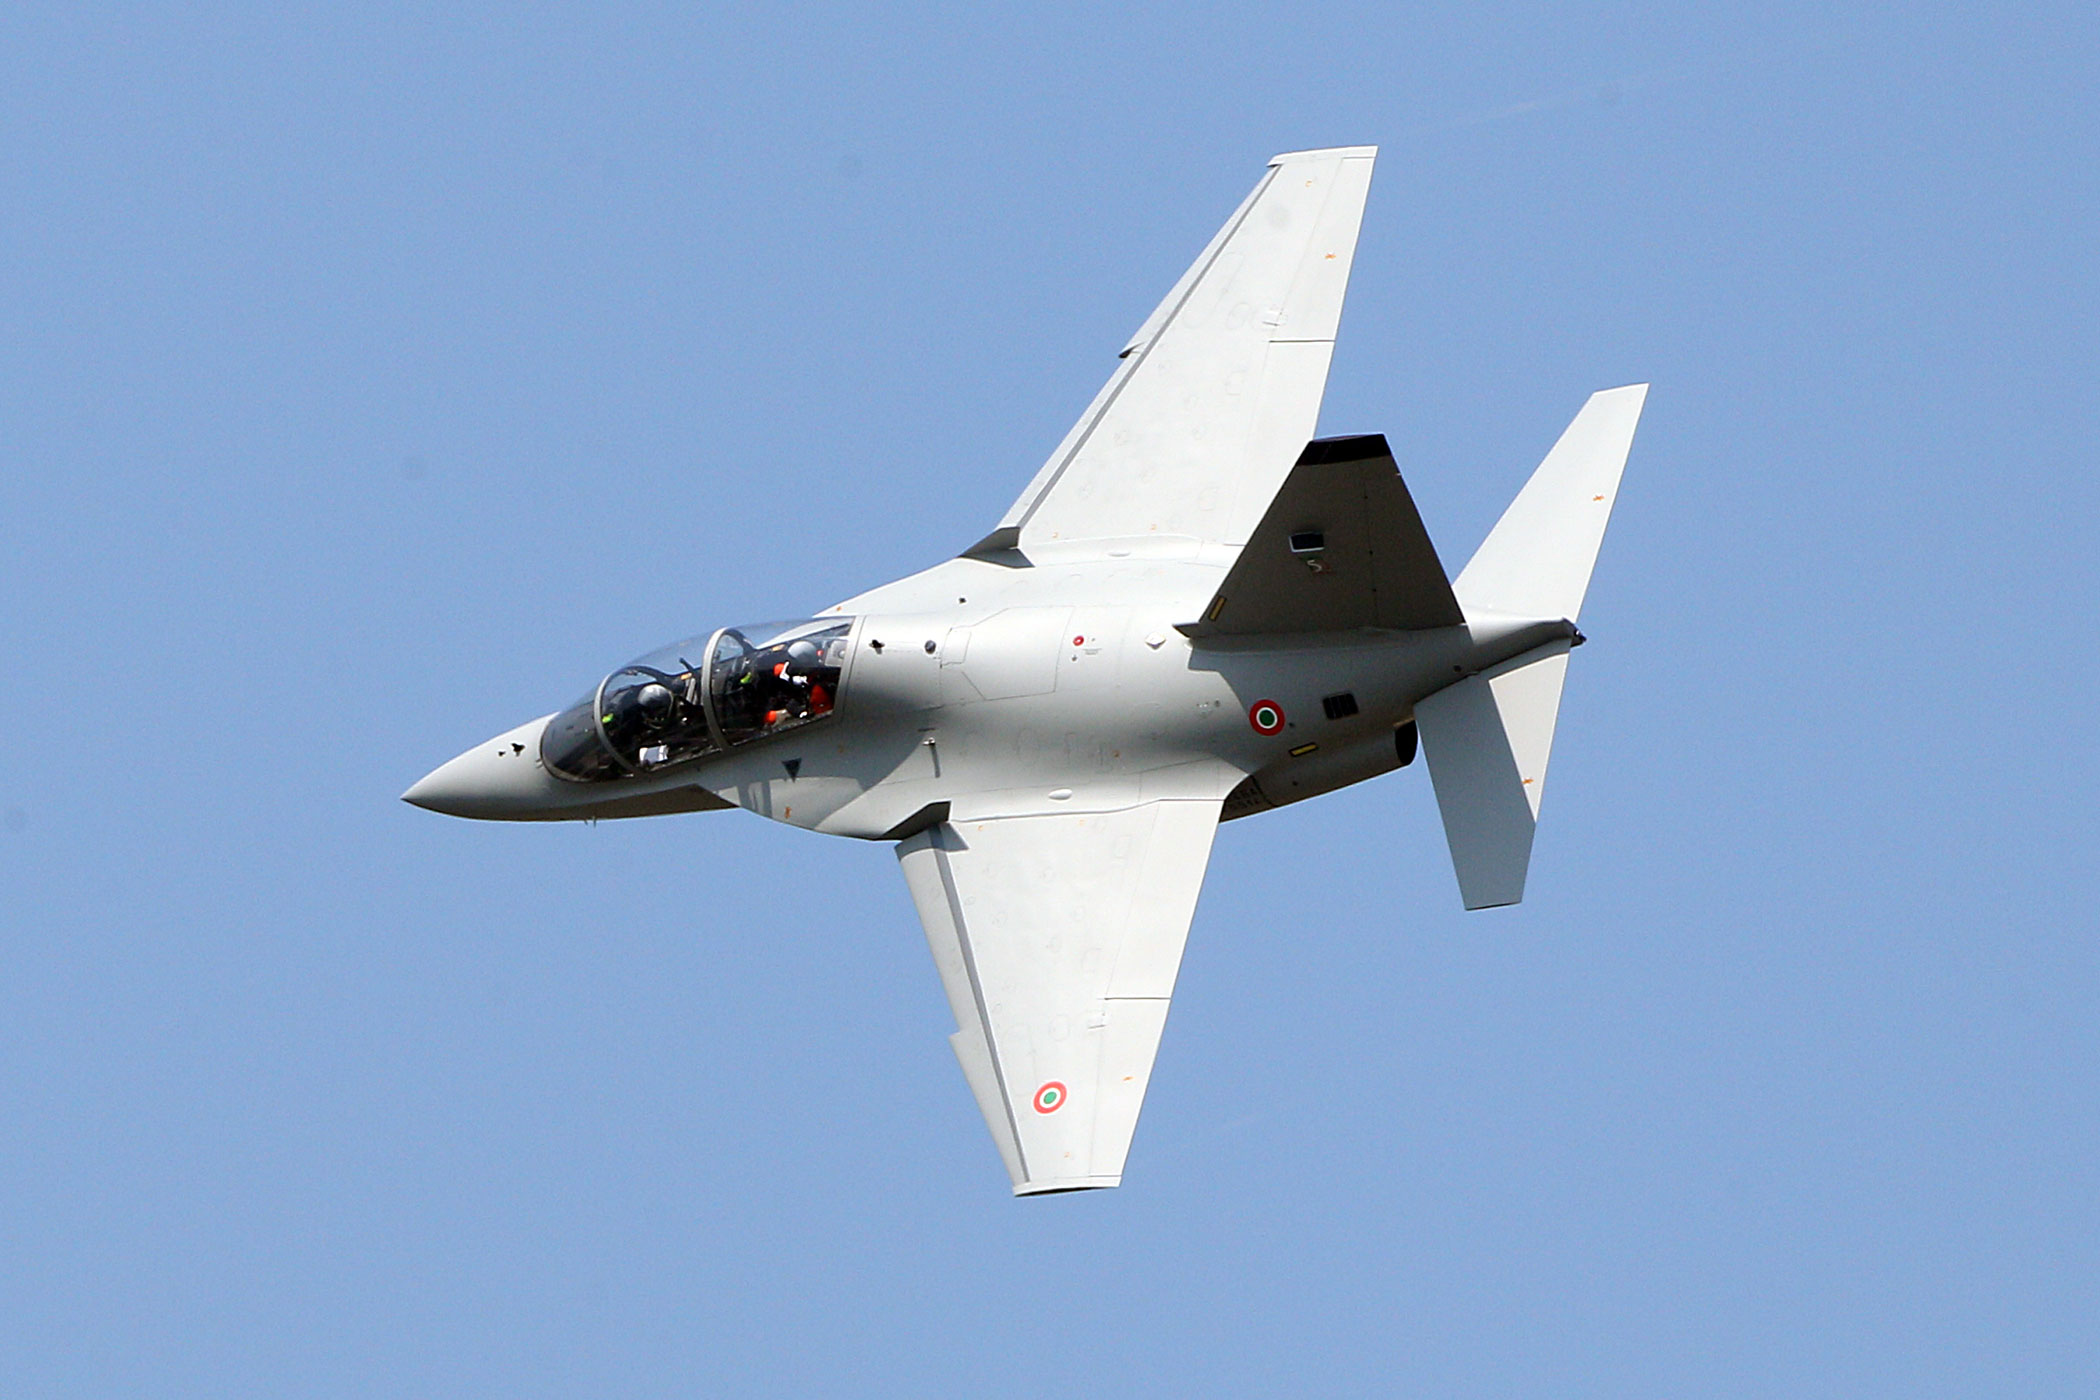 Italian Jet Trainer Finds New Cost-Saving Roles | Defense News